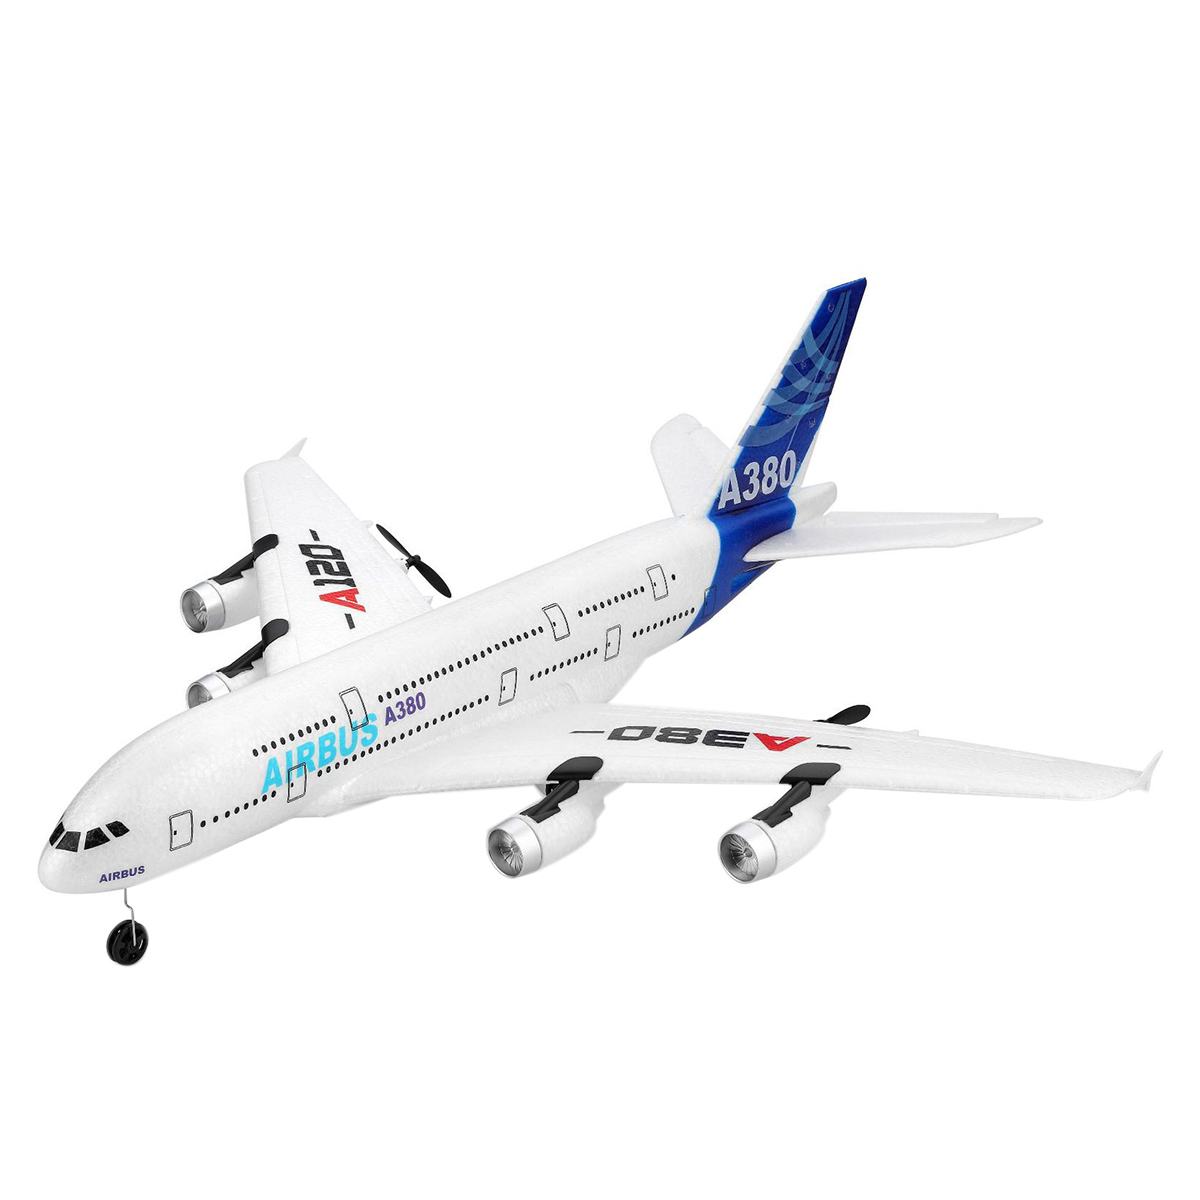 WLtoys new childrens remote control A120 Airliner Double motor strong propulsion remote control aircraft A380 three channel lWLtoys new childrens remote control A120 Airliner Double motor strong propulsion remote control aircraft A380 three channel l